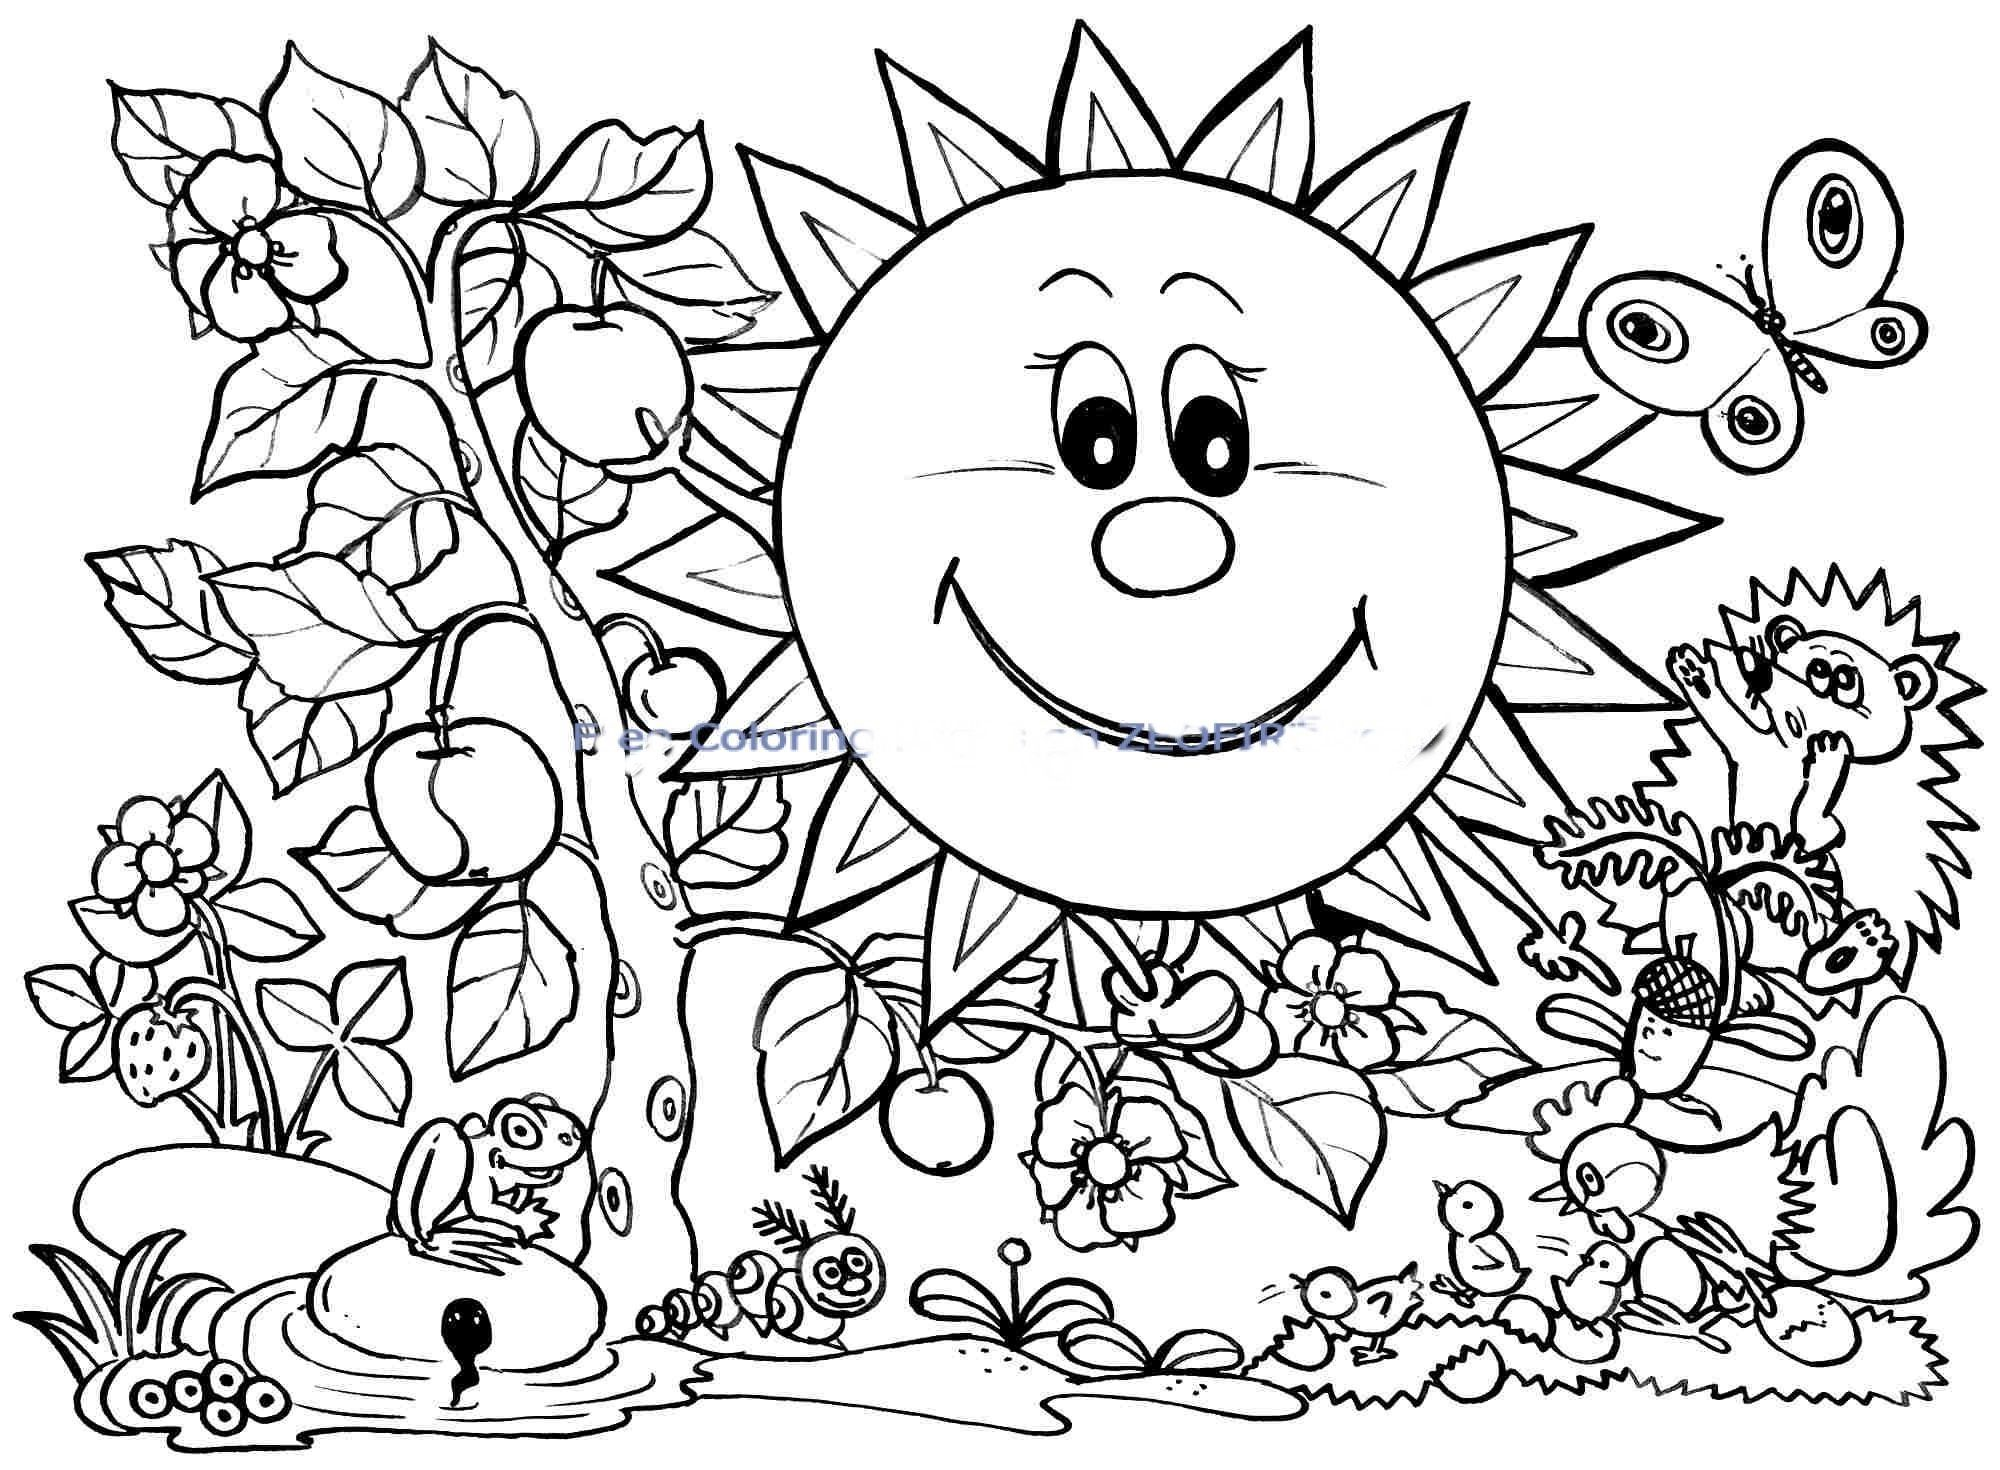 spring break coloring pages - photo#9